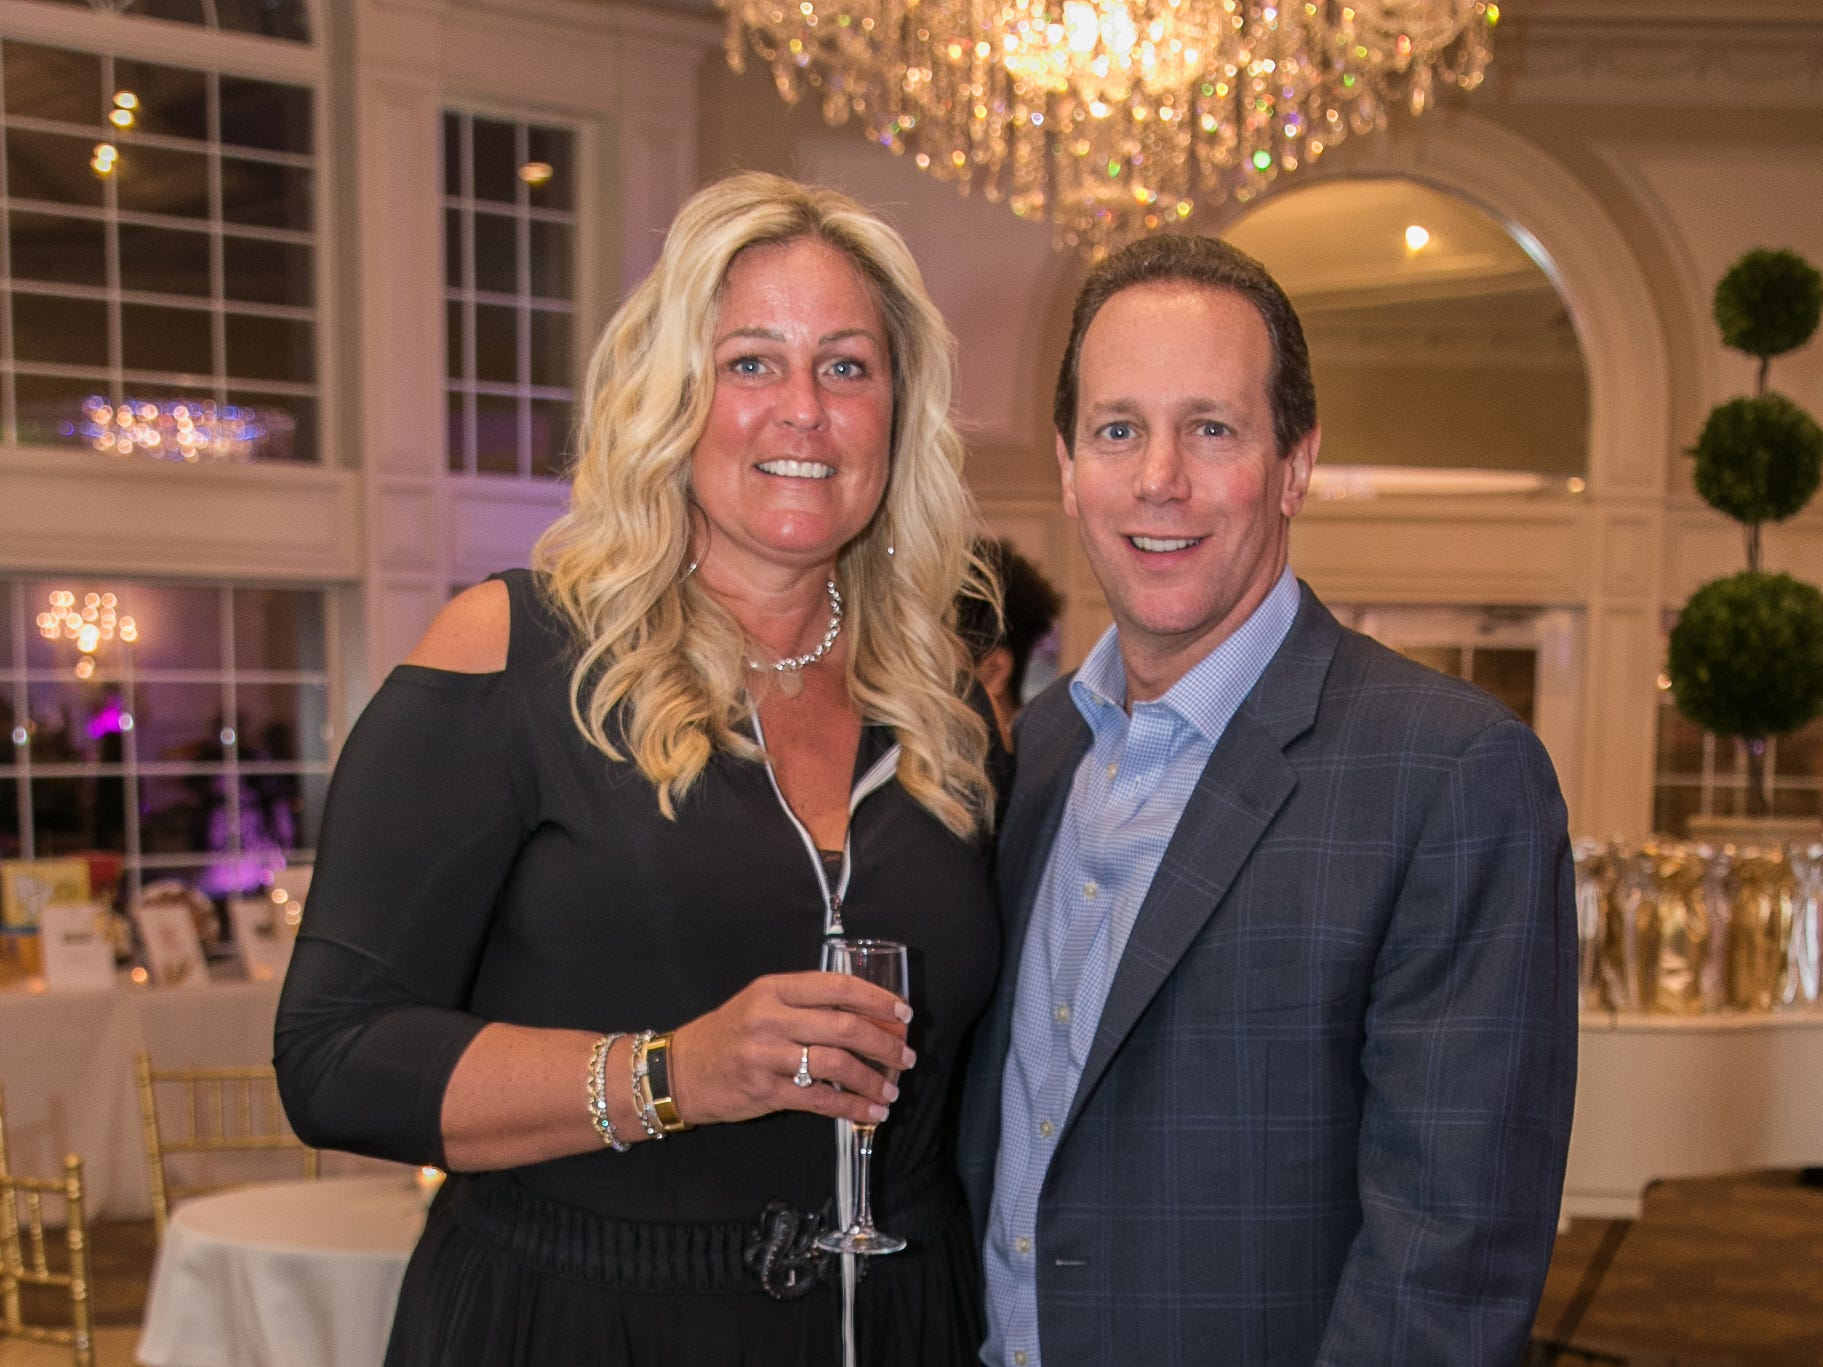 Jennifer and Alan Mittleman. Bergen Family Center celebrated 120 years of service with dinner and a silent auction at Th e Rockleigh Country Club.11/1/2018